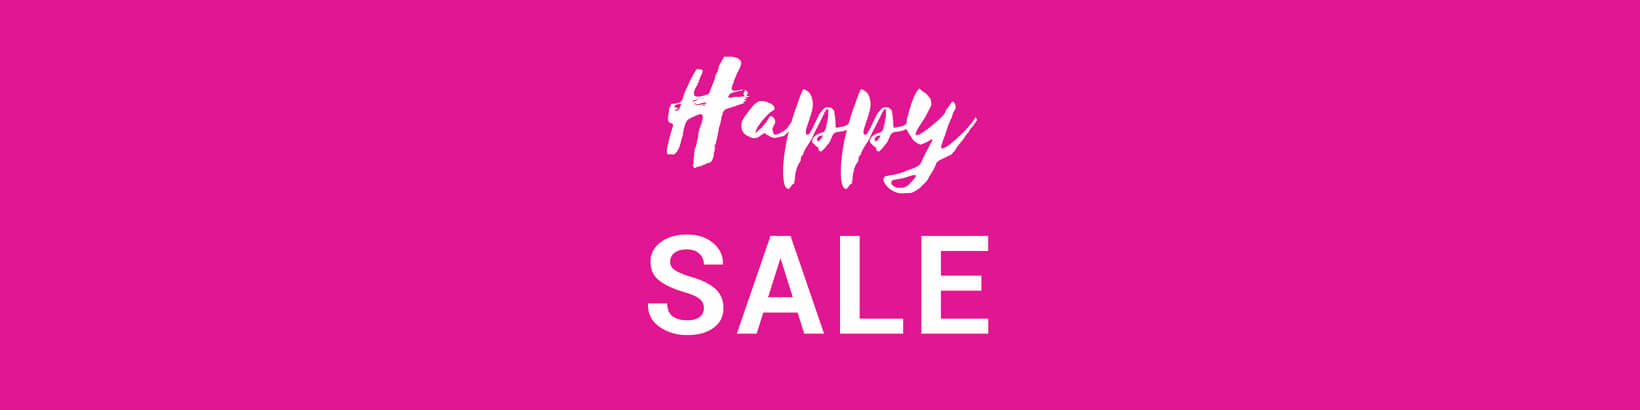 kategoriebanner-happy-sale-pink-header